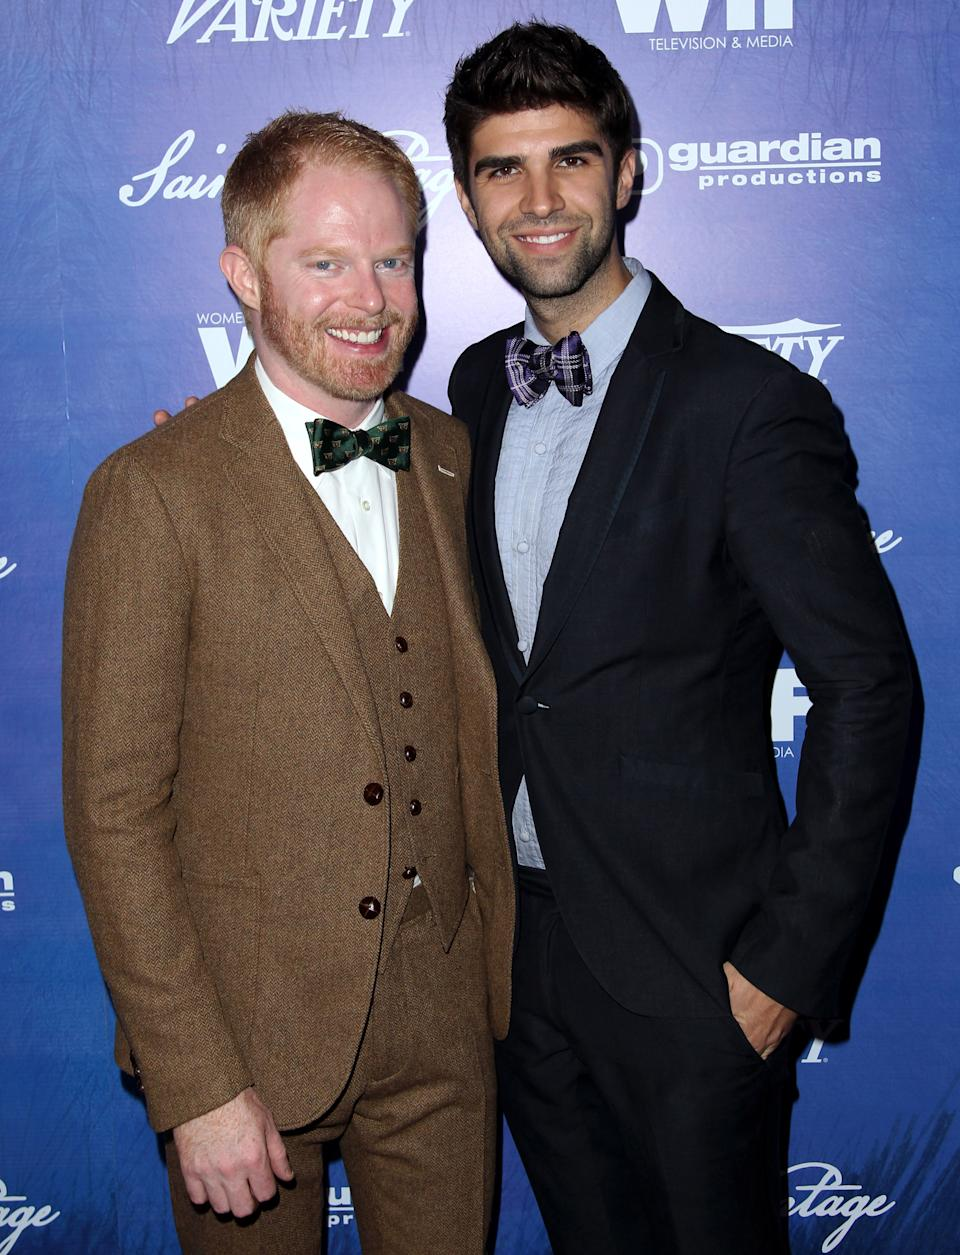 Jesse Tyler Ferguson, left, and Justin Mikita attend the Variety and Women in Film Pre-Emmy Event at Scarpetta on Friday, Sept. 21, 2012, in Beverly Hills, Calif. (Photo by Matt Sayles/Invision/AP)